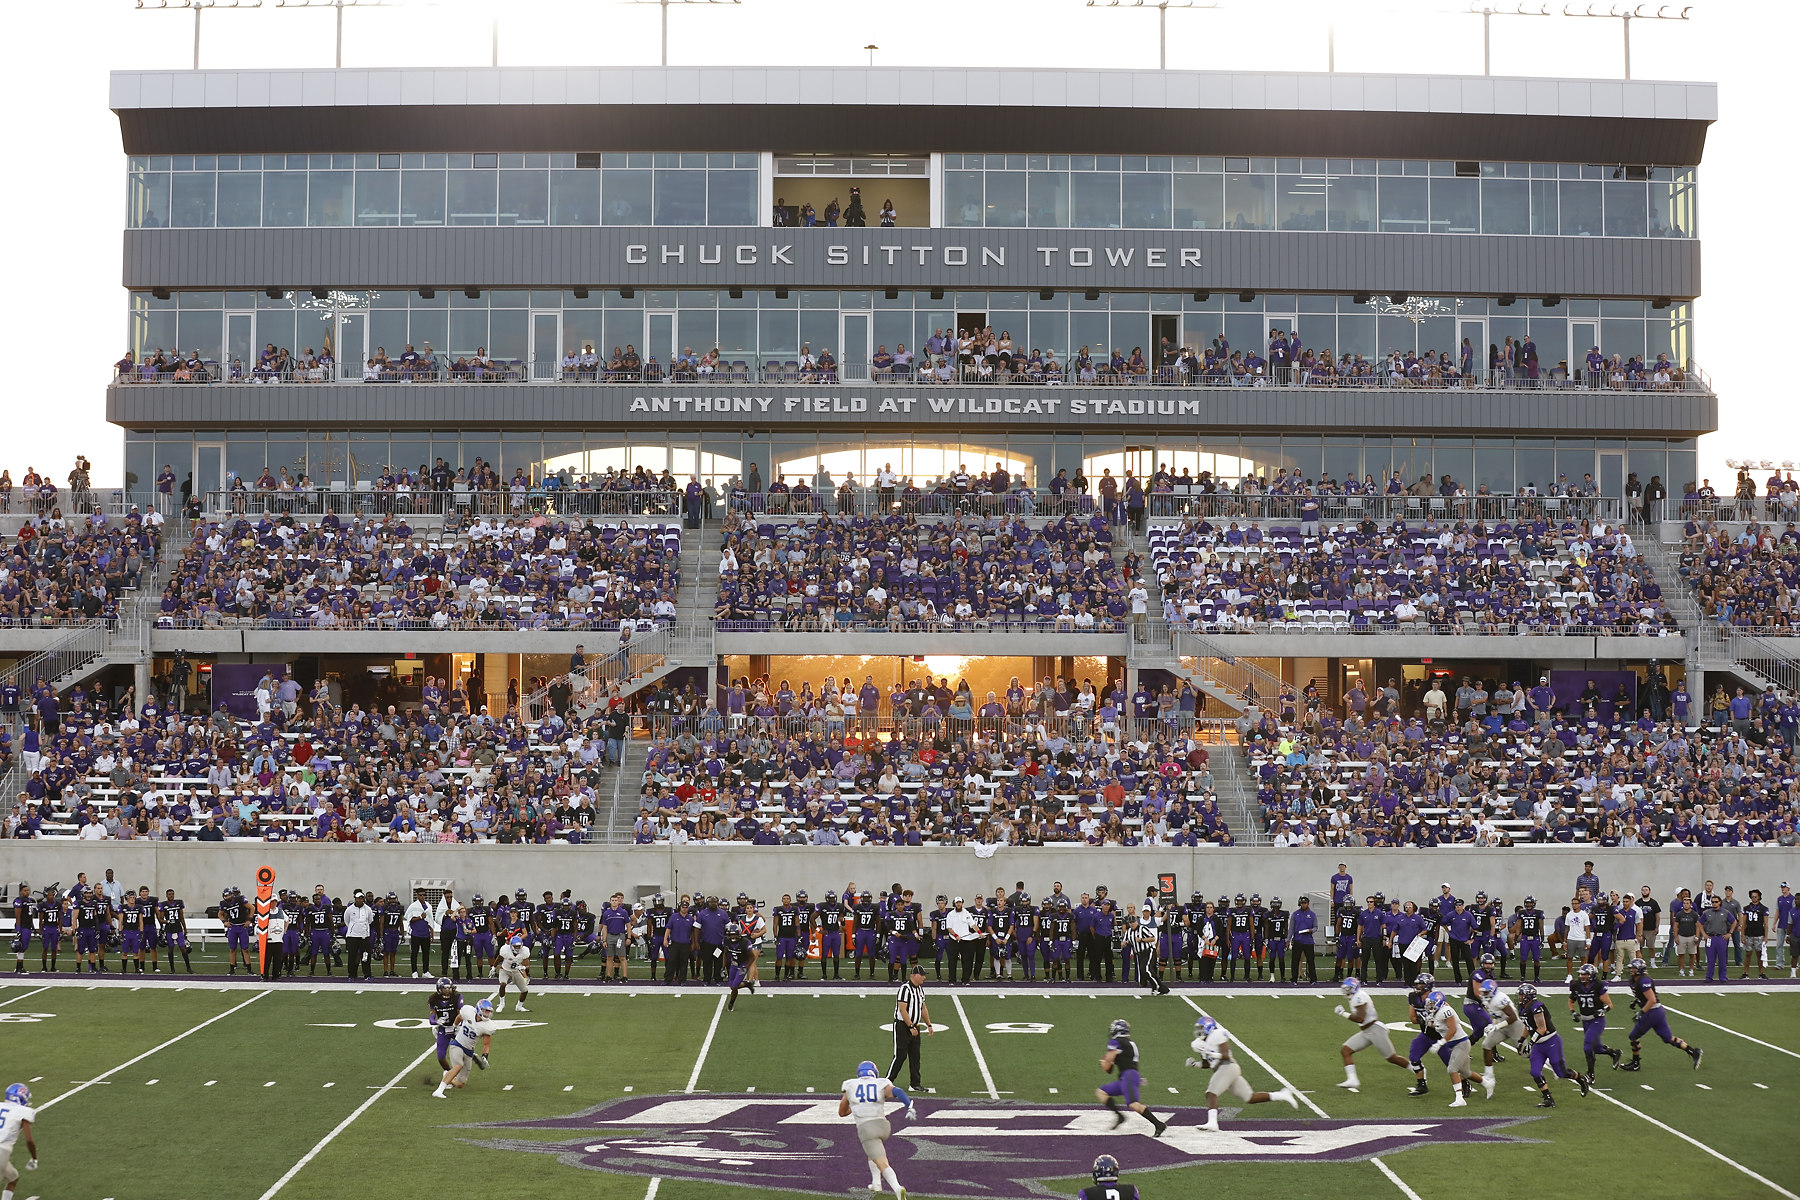 ACU Wildcats vs Houston Baptist at Wildcat Stadium opening game